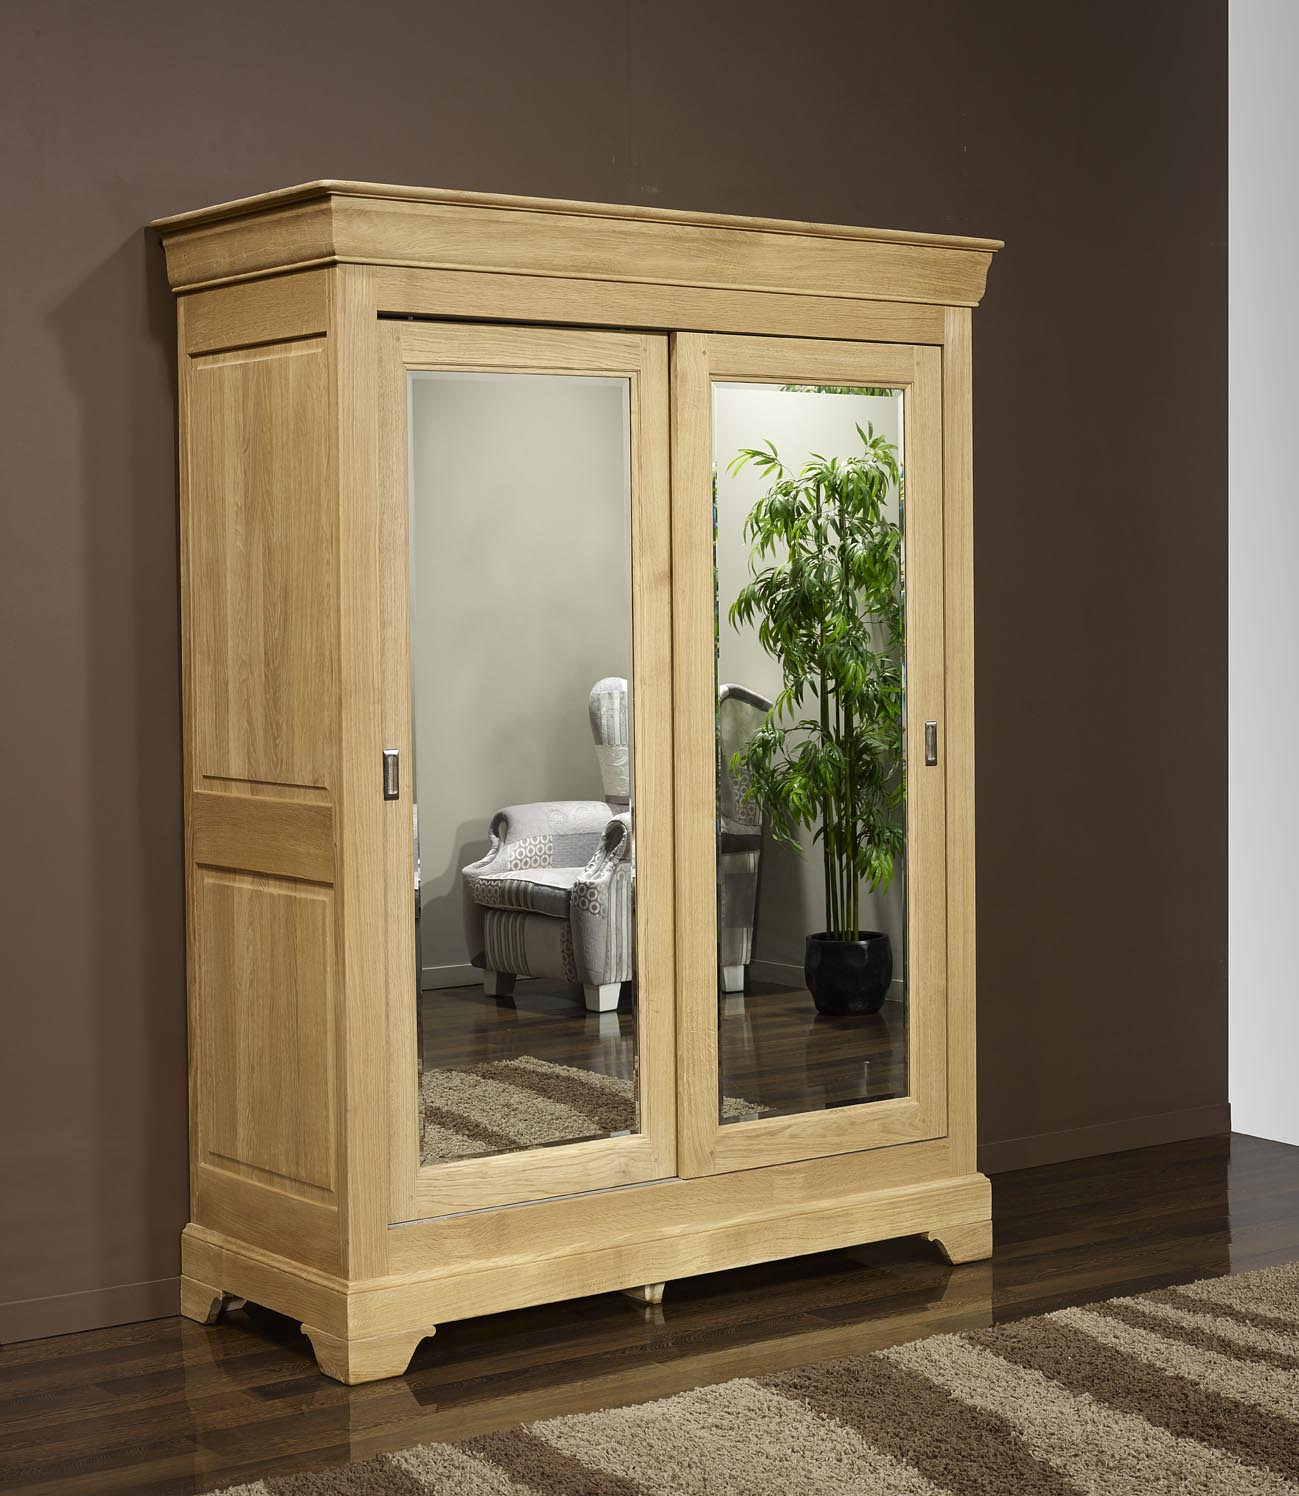 armoire en bois massif portes coulissantes. Black Bedroom Furniture Sets. Home Design Ideas